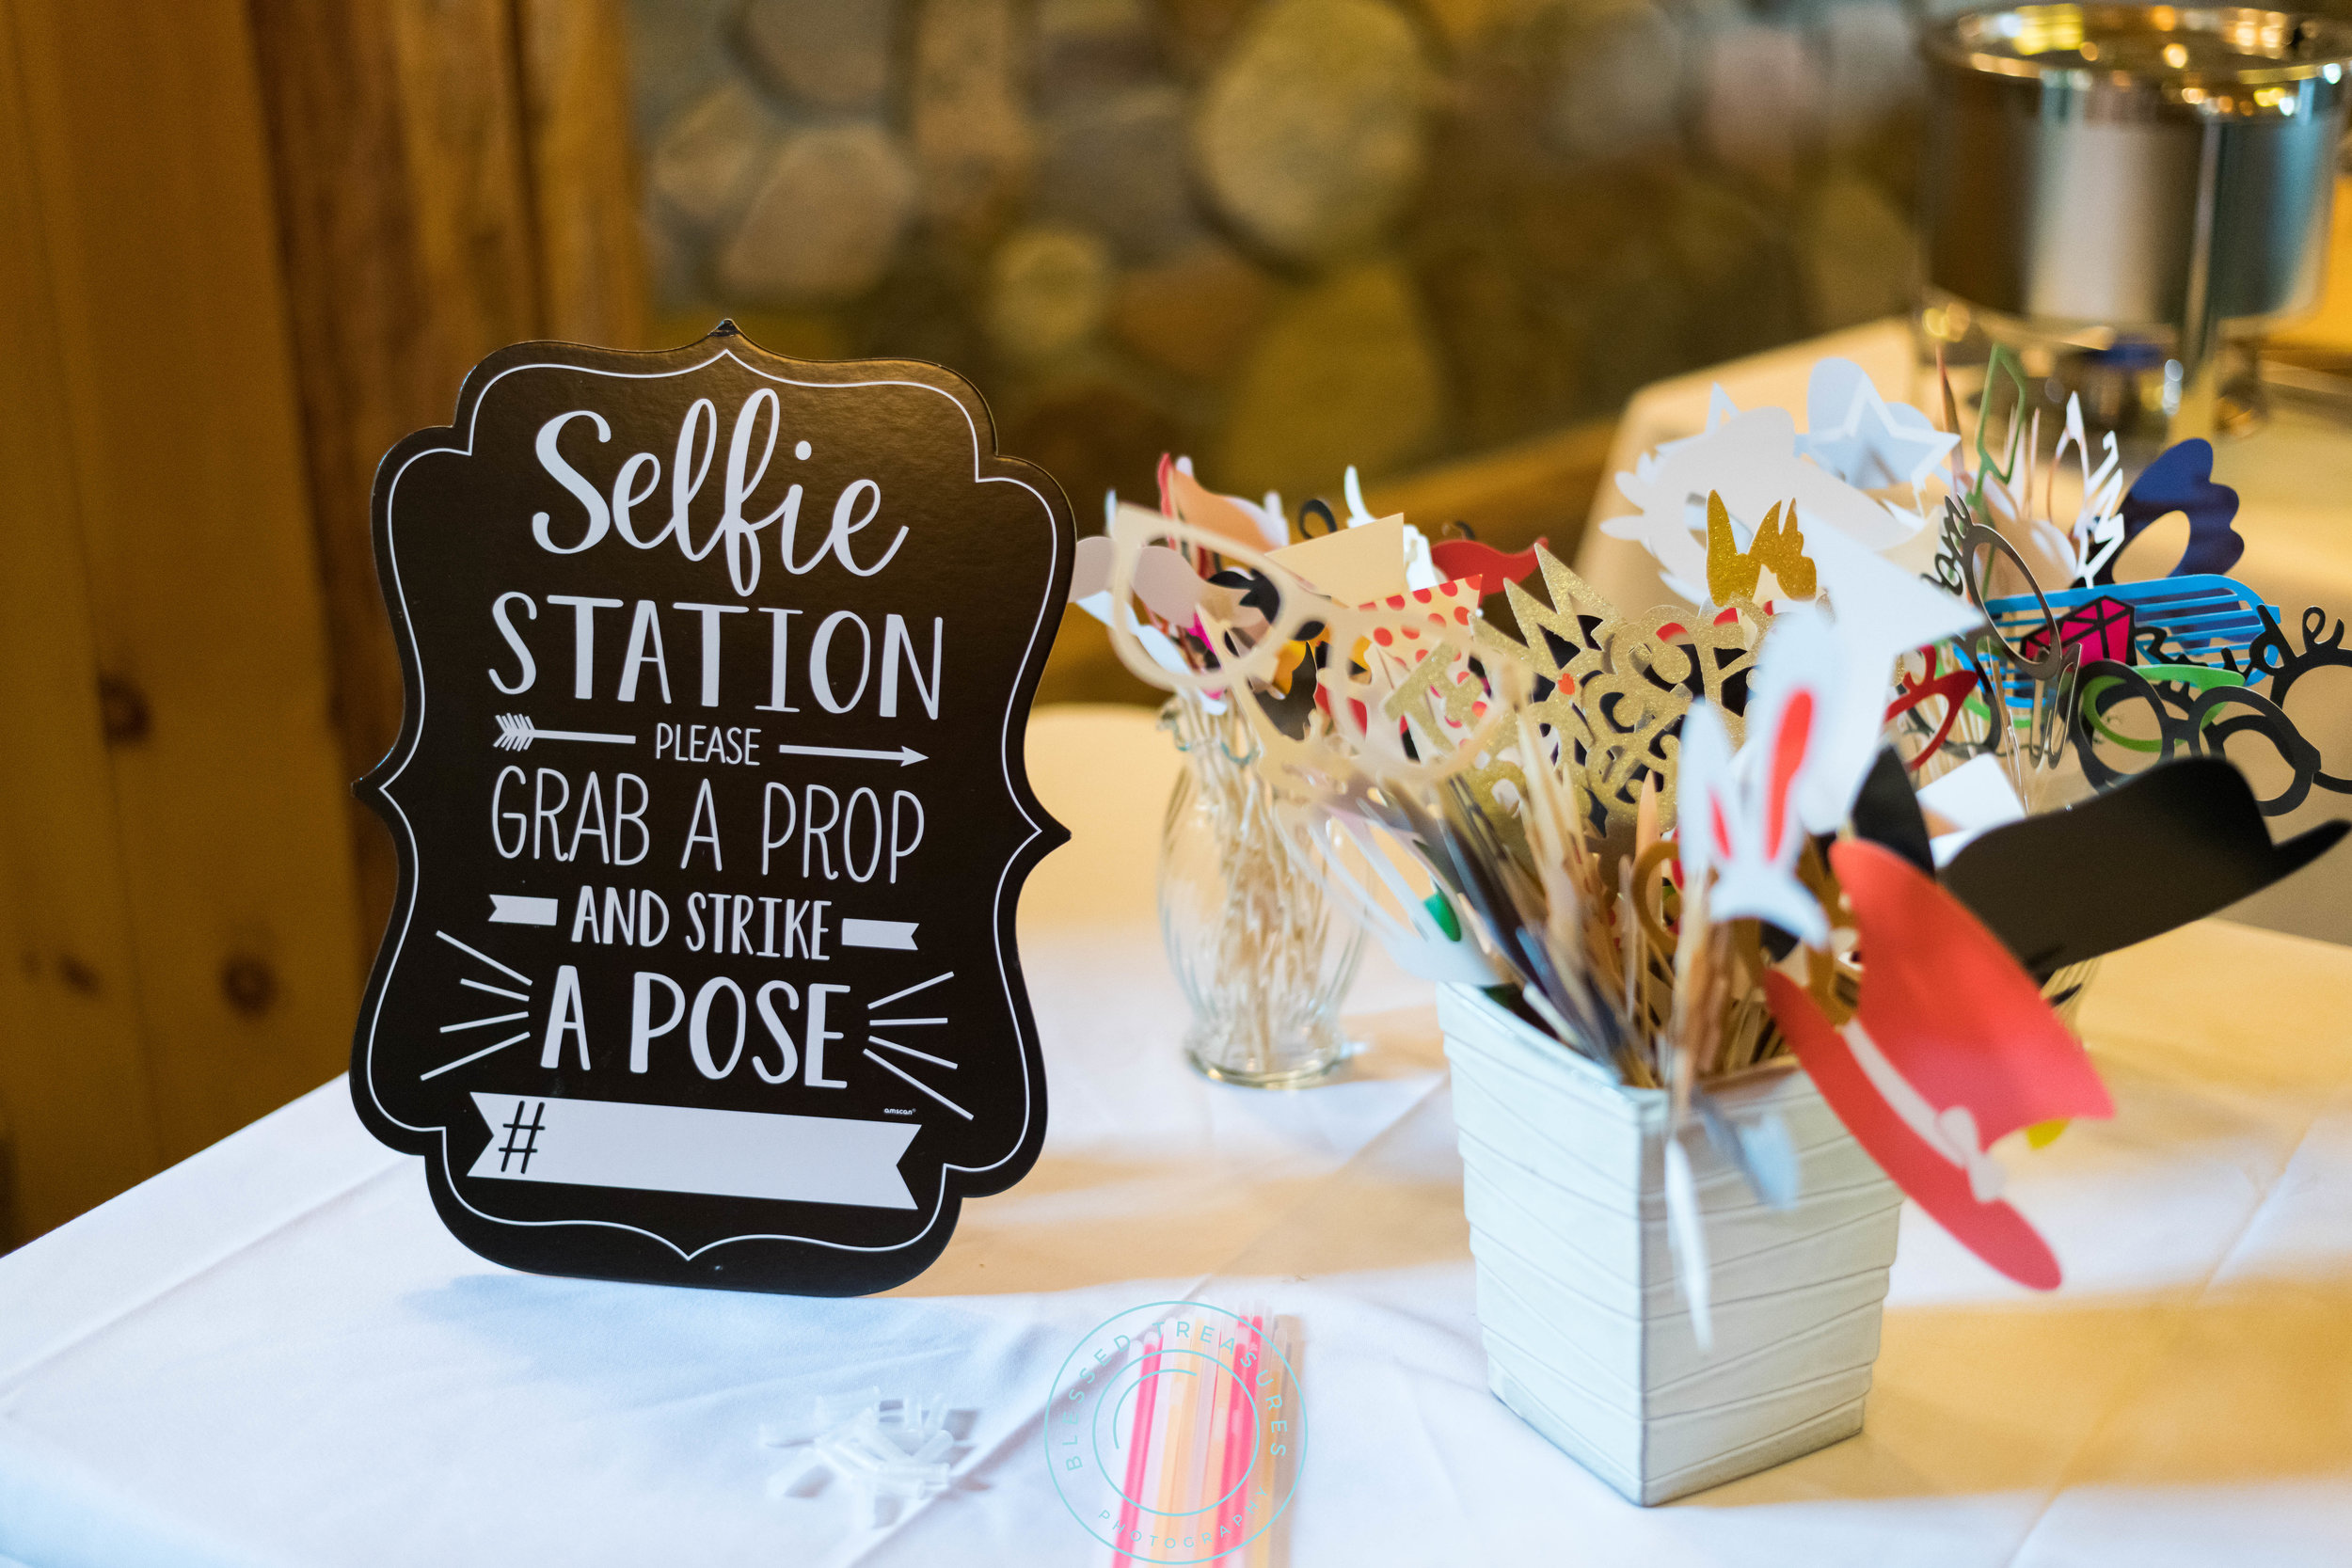 George Young complex banquet hall golf course iron river michigan wedding selfie station props